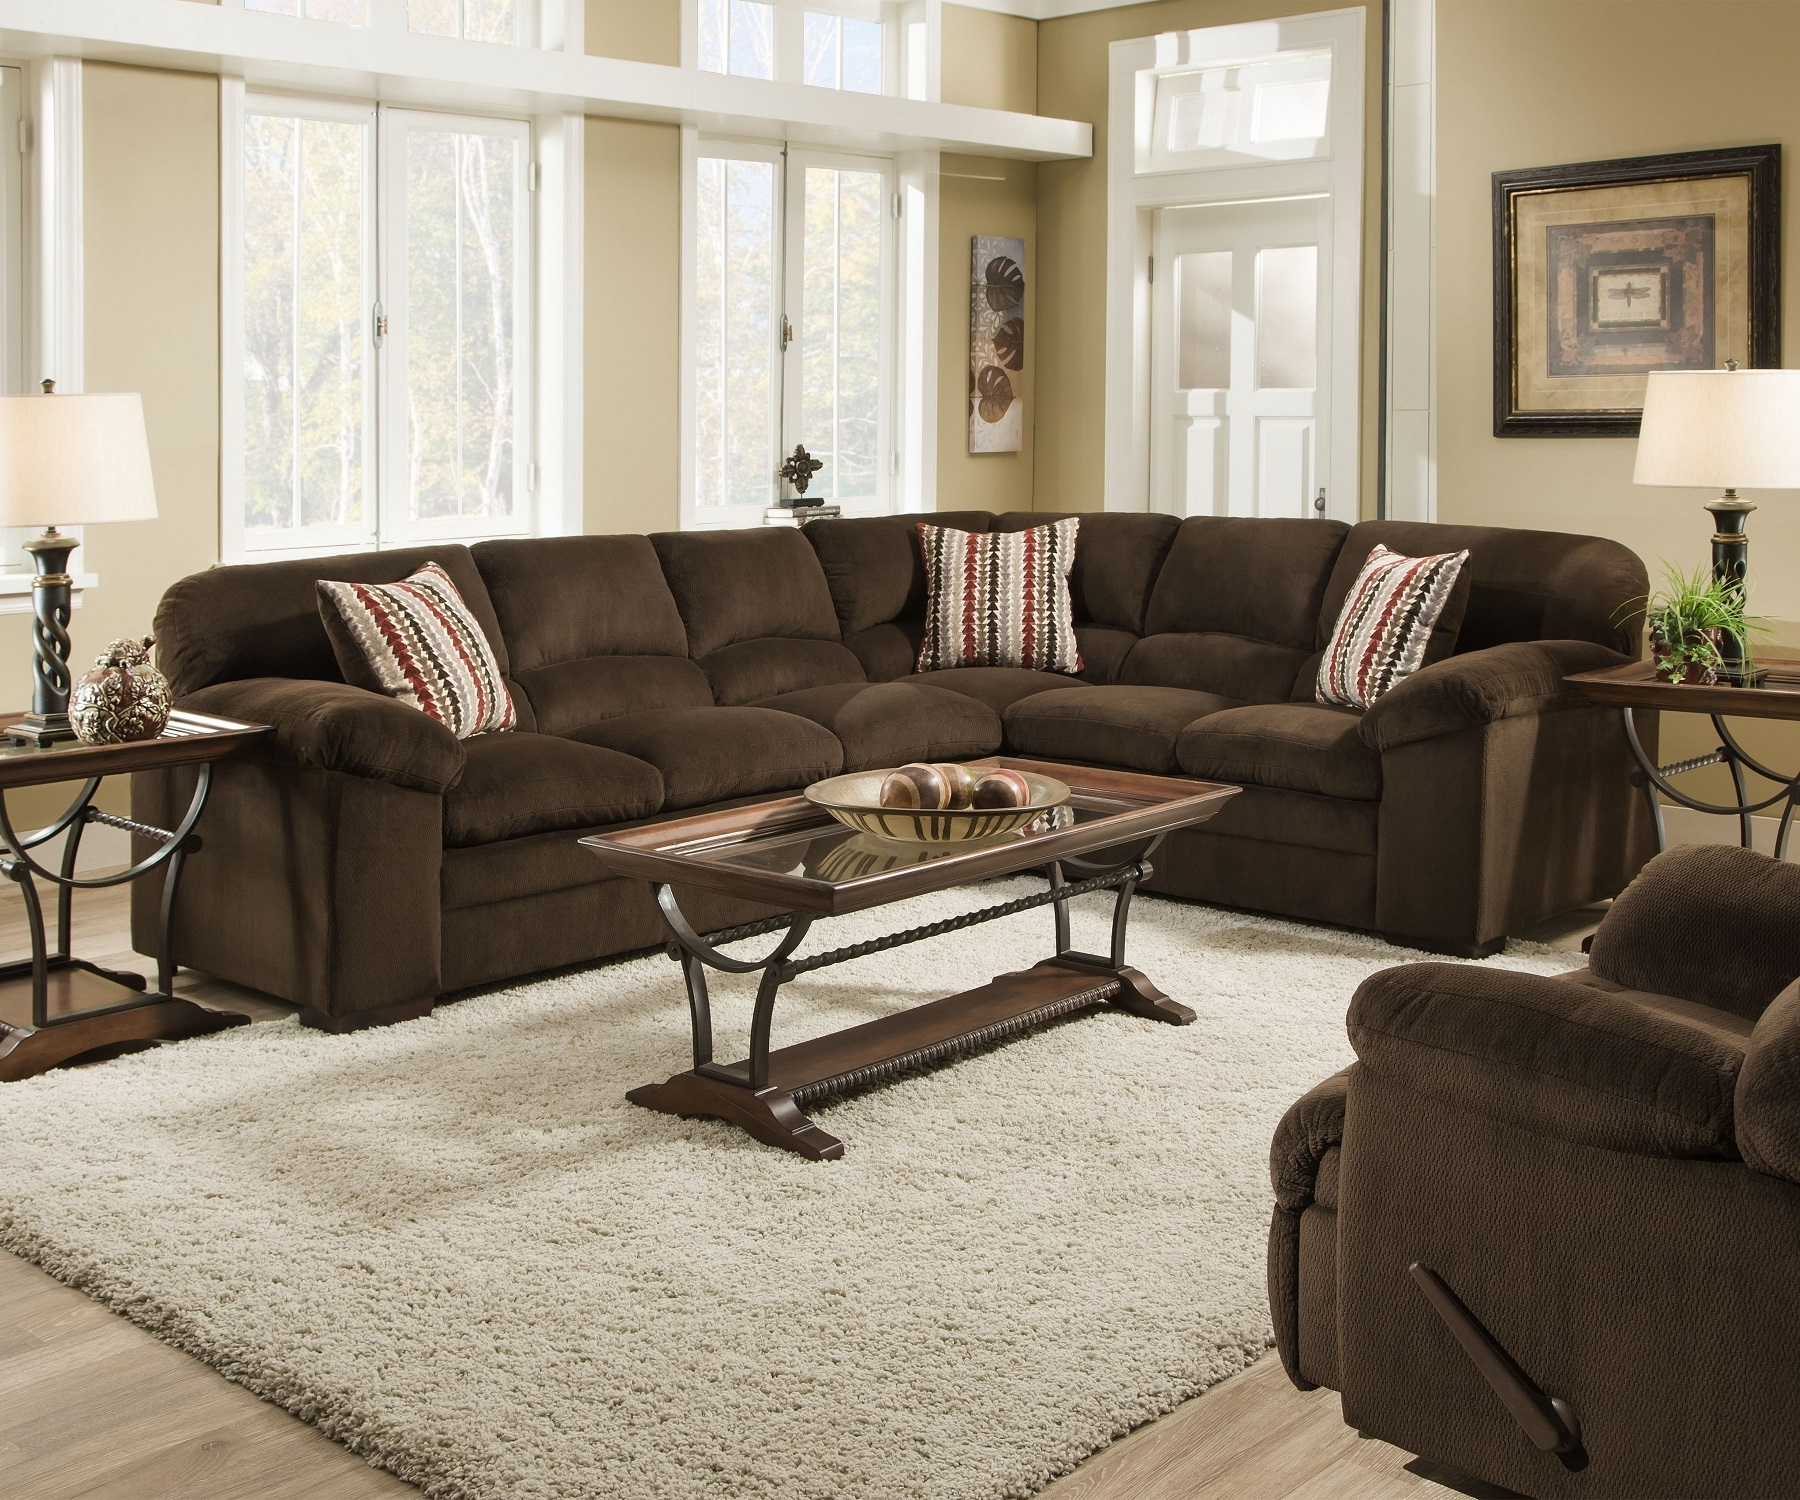 Widely Used Simmons Dover 8043 Chocolate Ultra Plush Soft Seating Made In The Usa With Regard To Simmons Sectional Sofas (View 20 of 20)